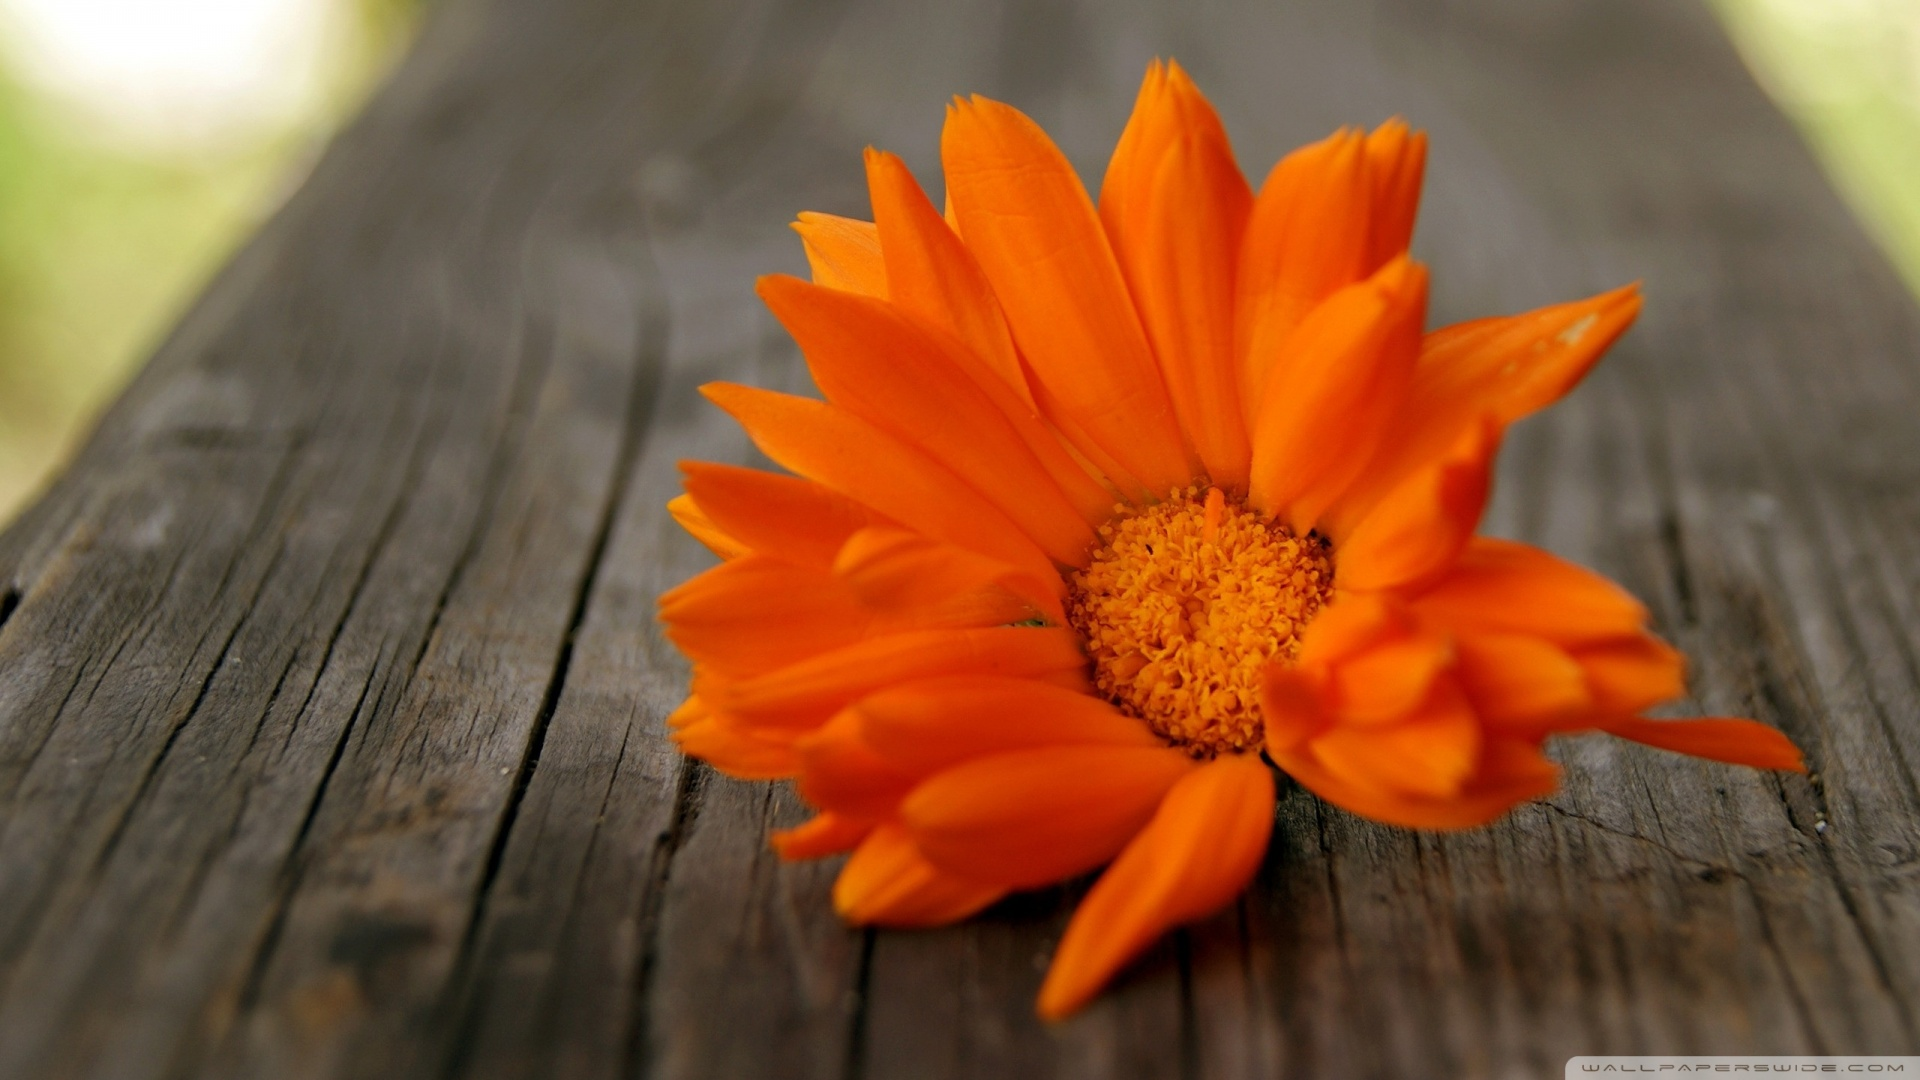 Orange Flower HD